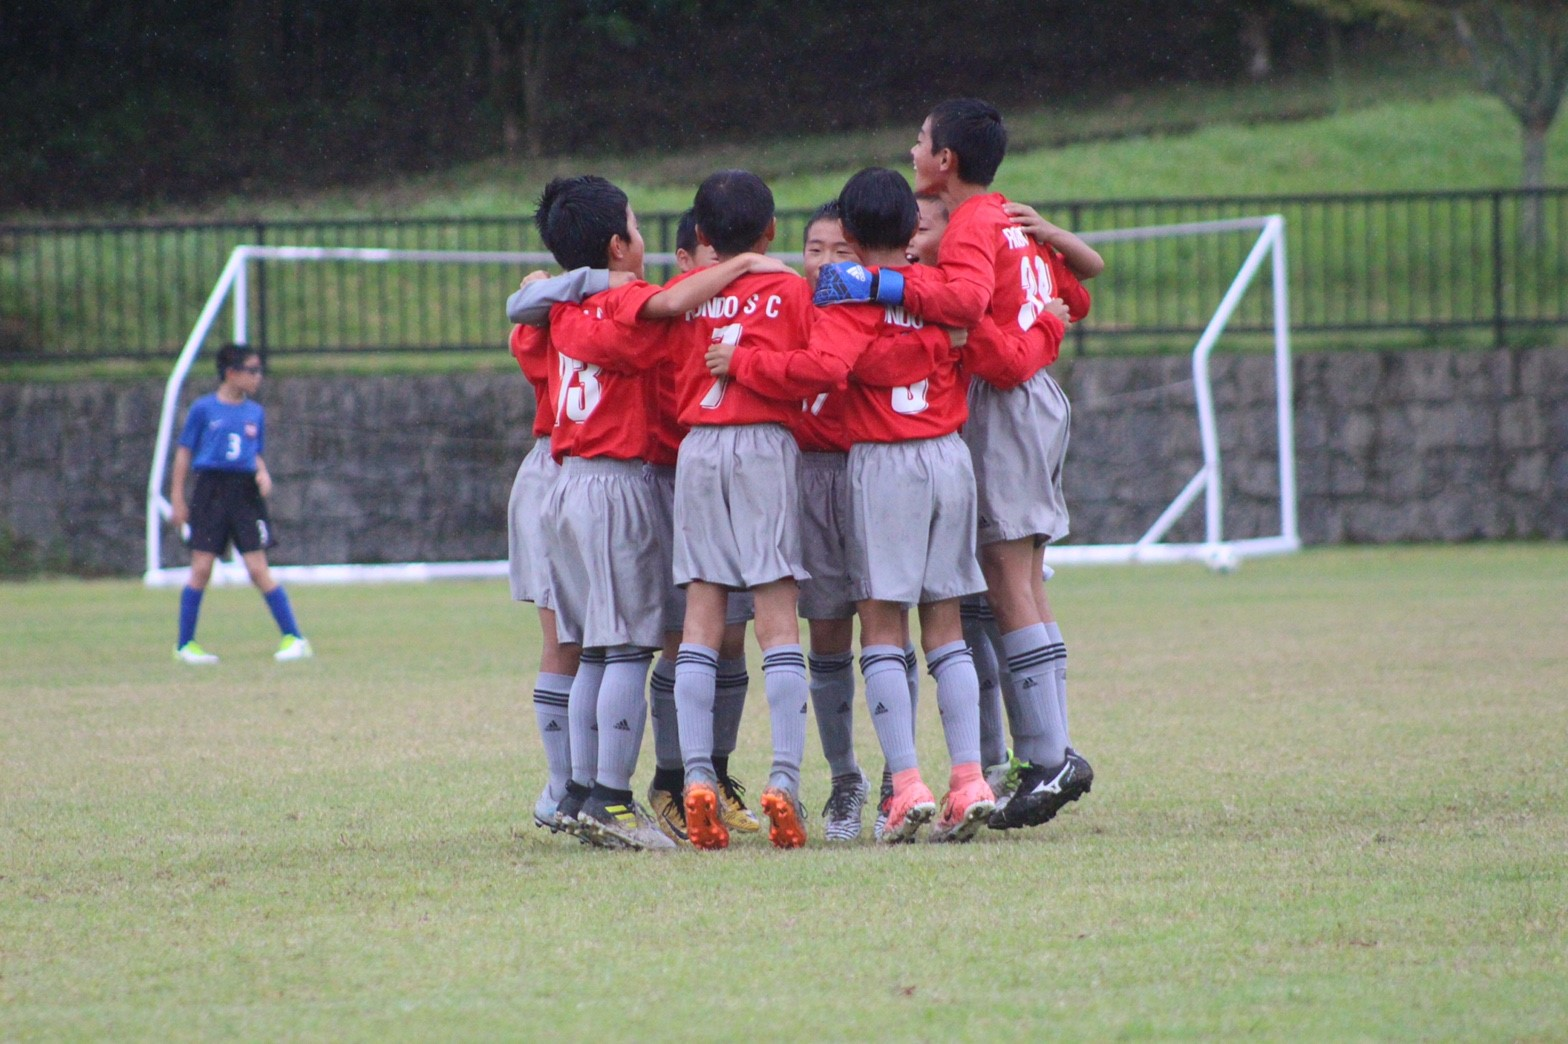 Rondo Soocer Club U-12 Technical Report